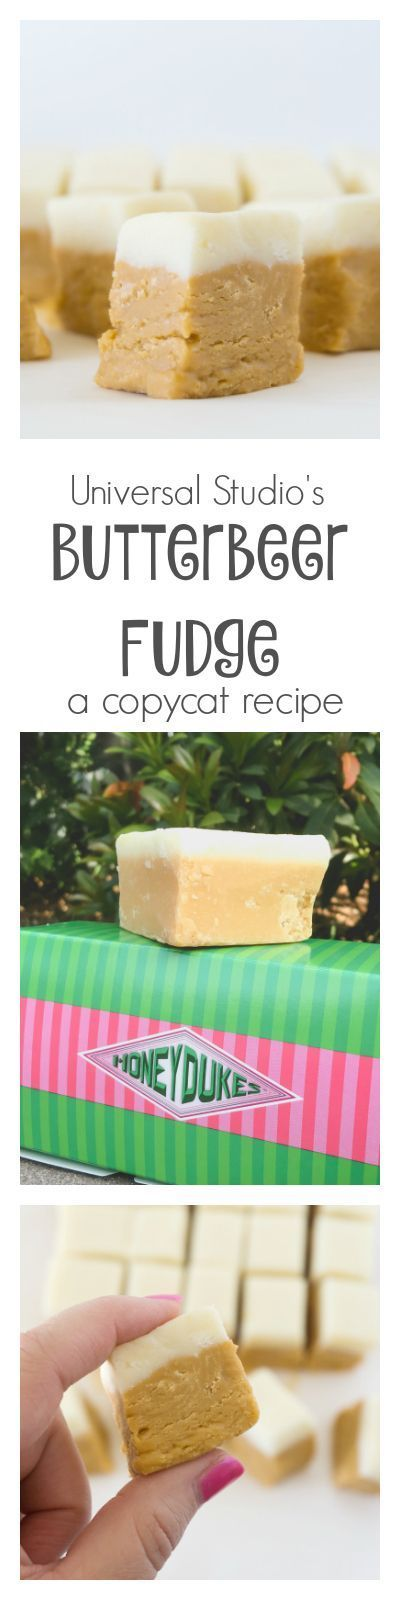 This delicious Butterbeer Fudge with a hint of rum is the perfect copycat version of the Honeydukes treat at Universal Studios.